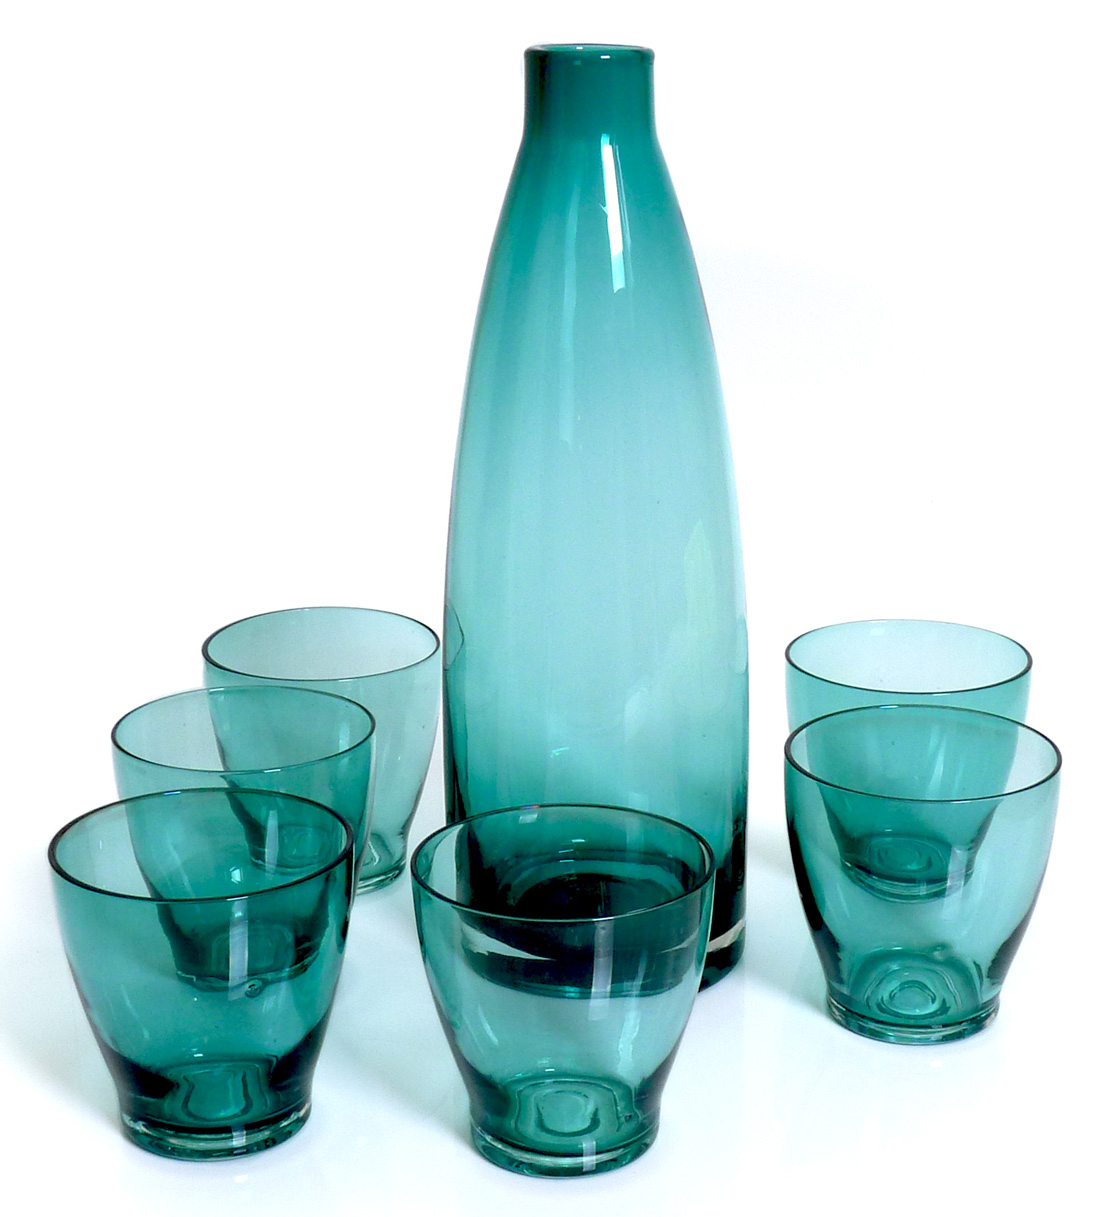 Image of Handblown Decanter Set with 6 Tumbler Glasses, Blue